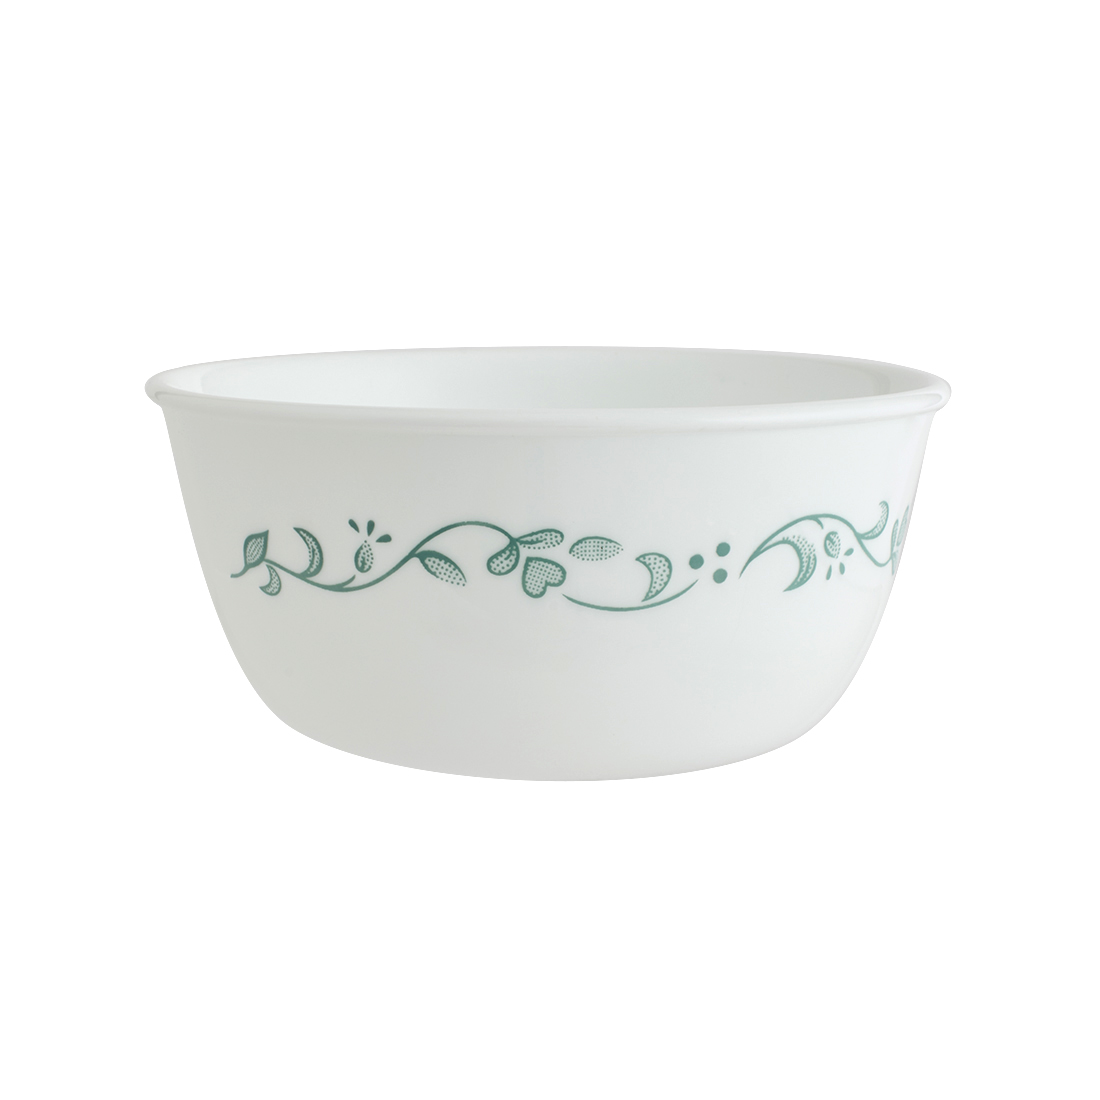 Corelle Country Cottage Curry Bowl Vitrelle Soup Bowls in White & Multicolour Decal Colour by Corelle